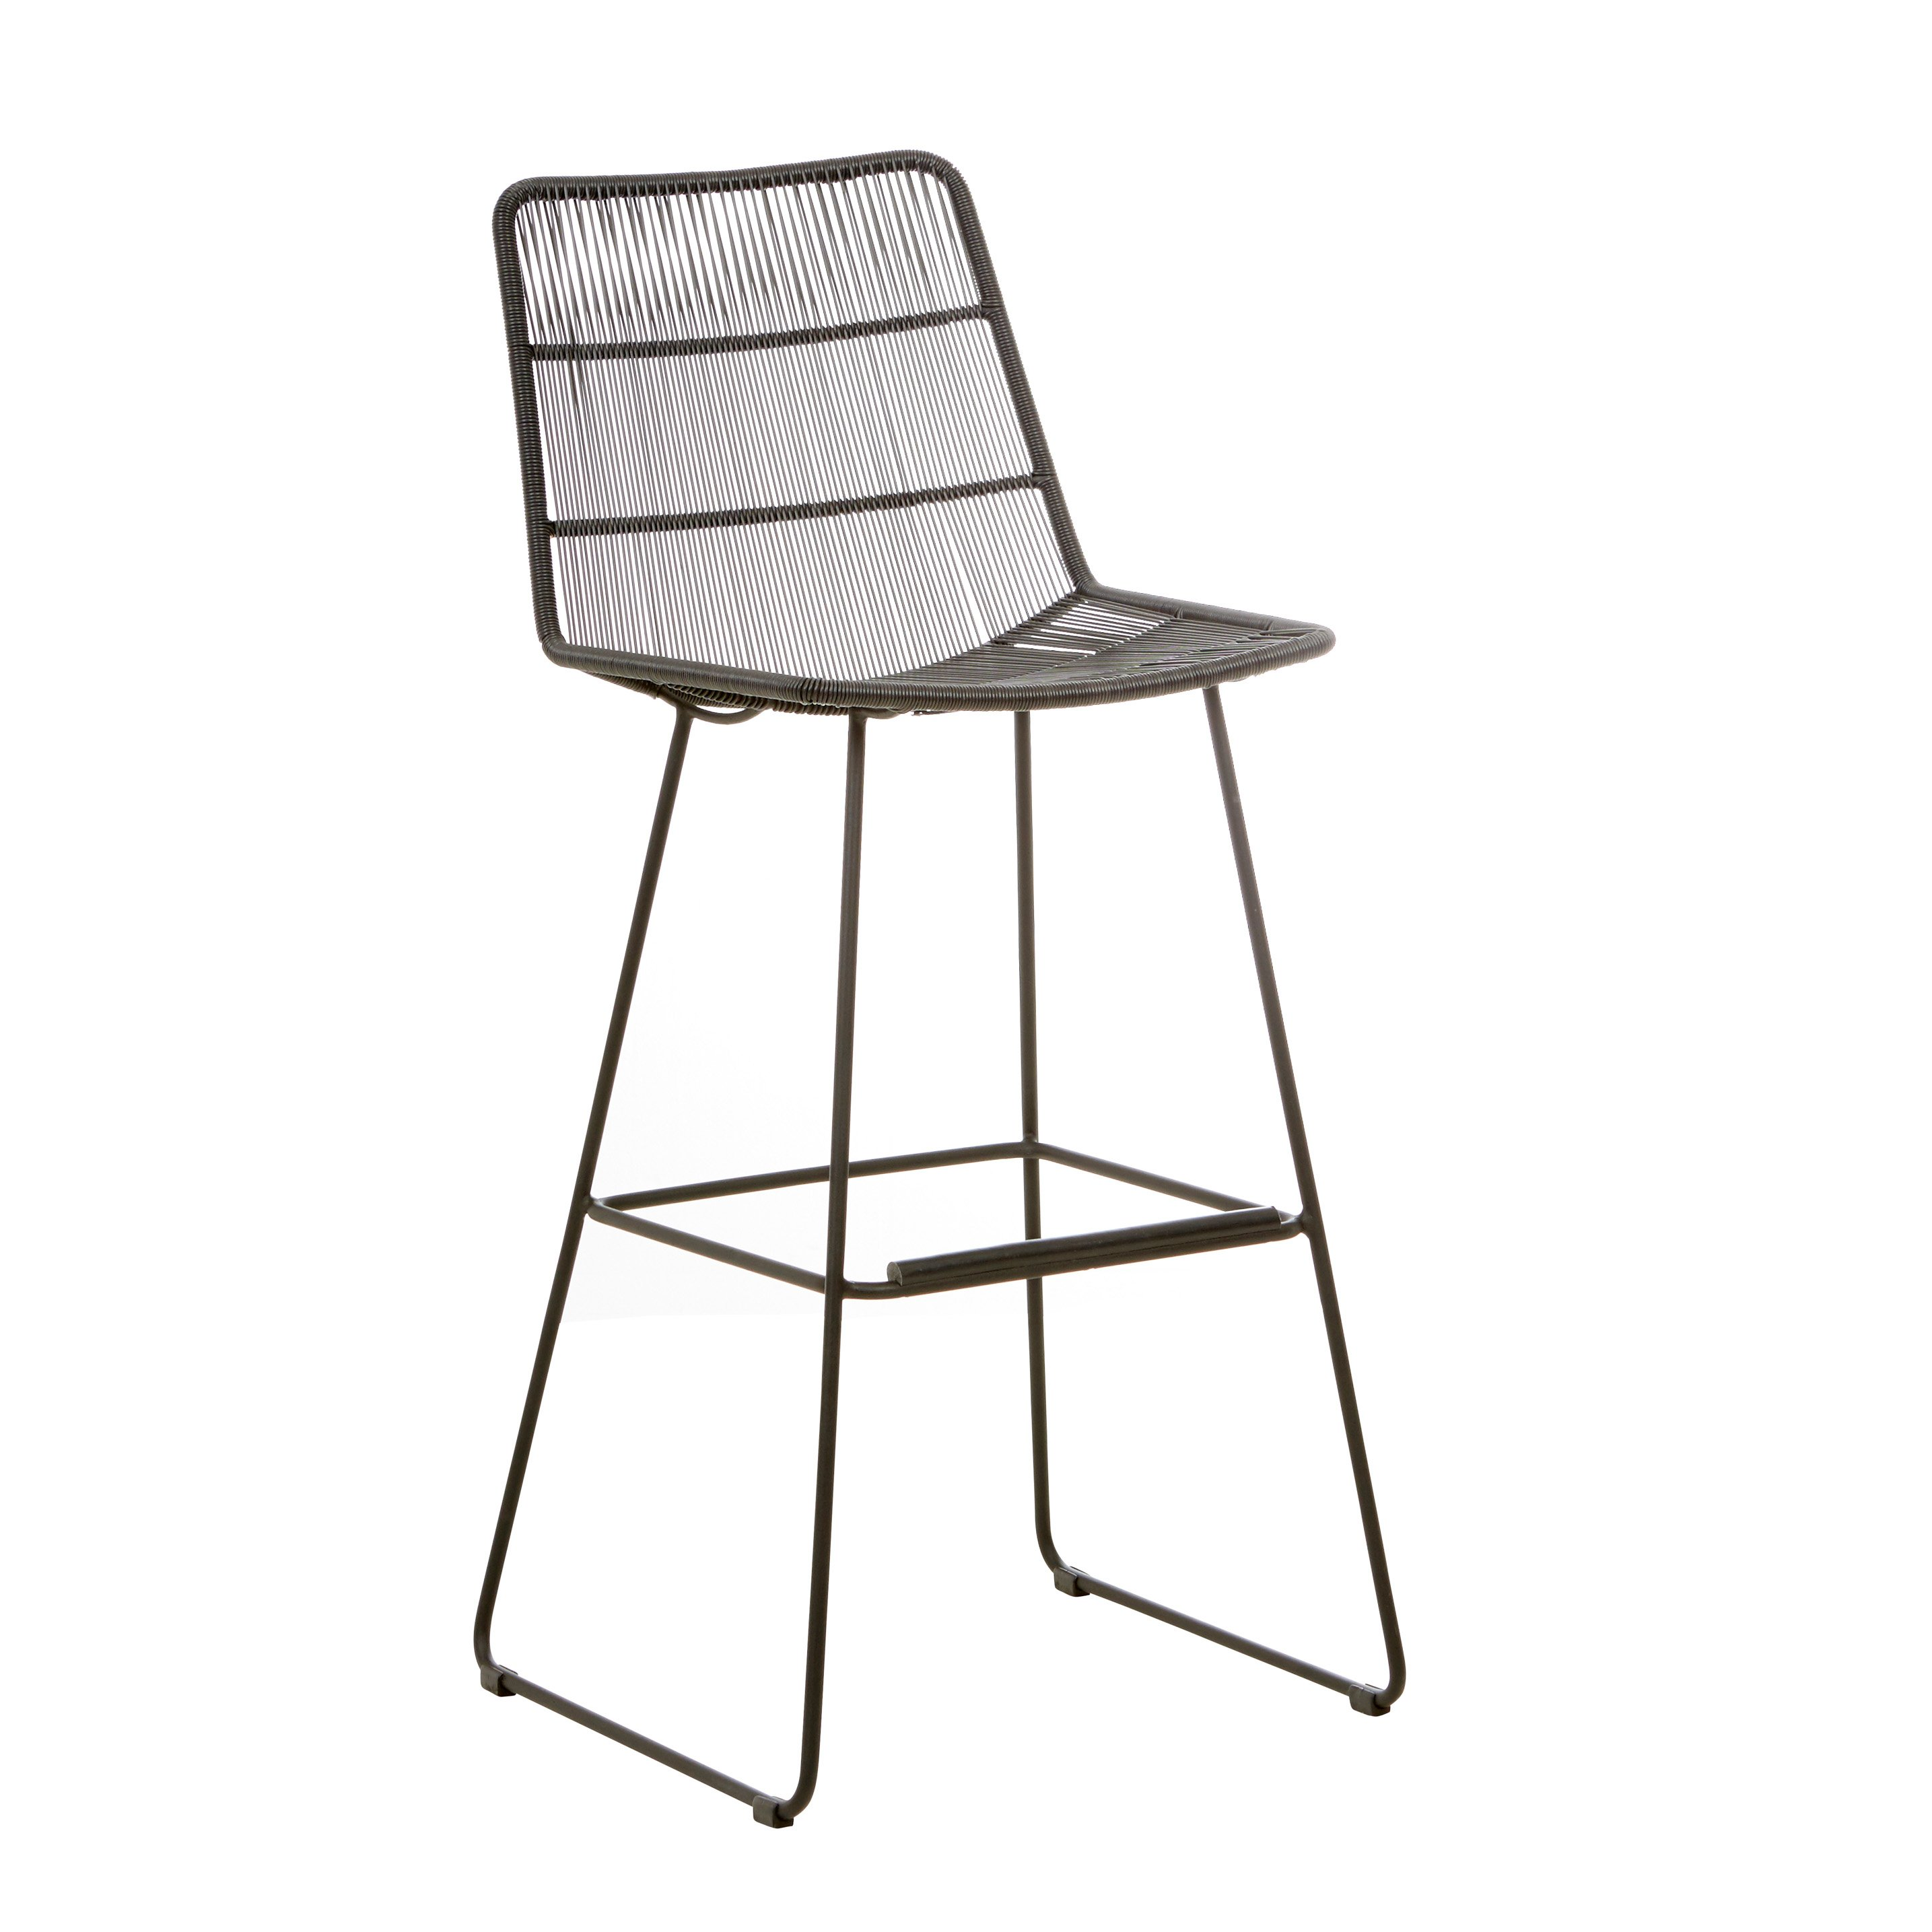 Furniture Hero-Images Dining-Chairs-Benches-and-Stools granada-sleigh-barstool-01